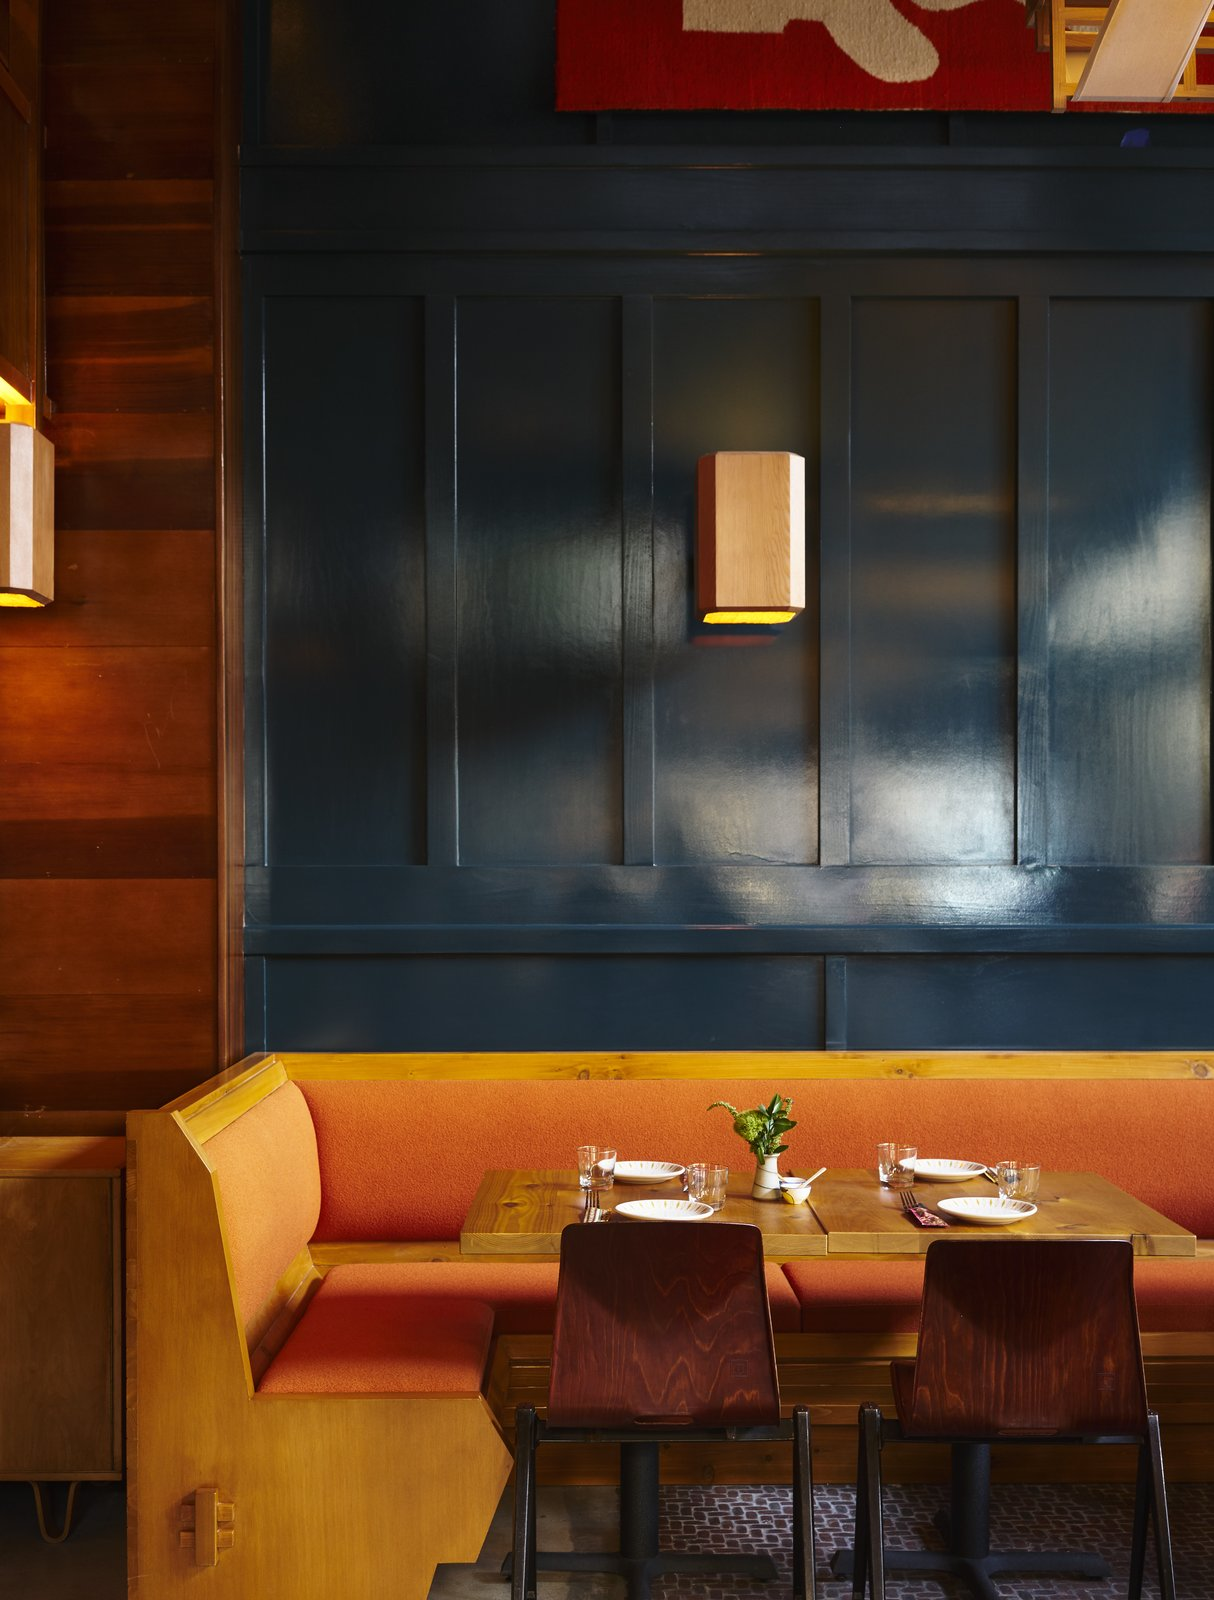 Dining Room, Table, Bench, Chair, and Wall Lighting Custom millwork was designed with an arts and craft influence through details and shape, softened by rich fabrics.  Photo 6 of 10 in A 1920s Office Building Is Revamped as a Craftsman-Inspired Hotel in Los Angeles